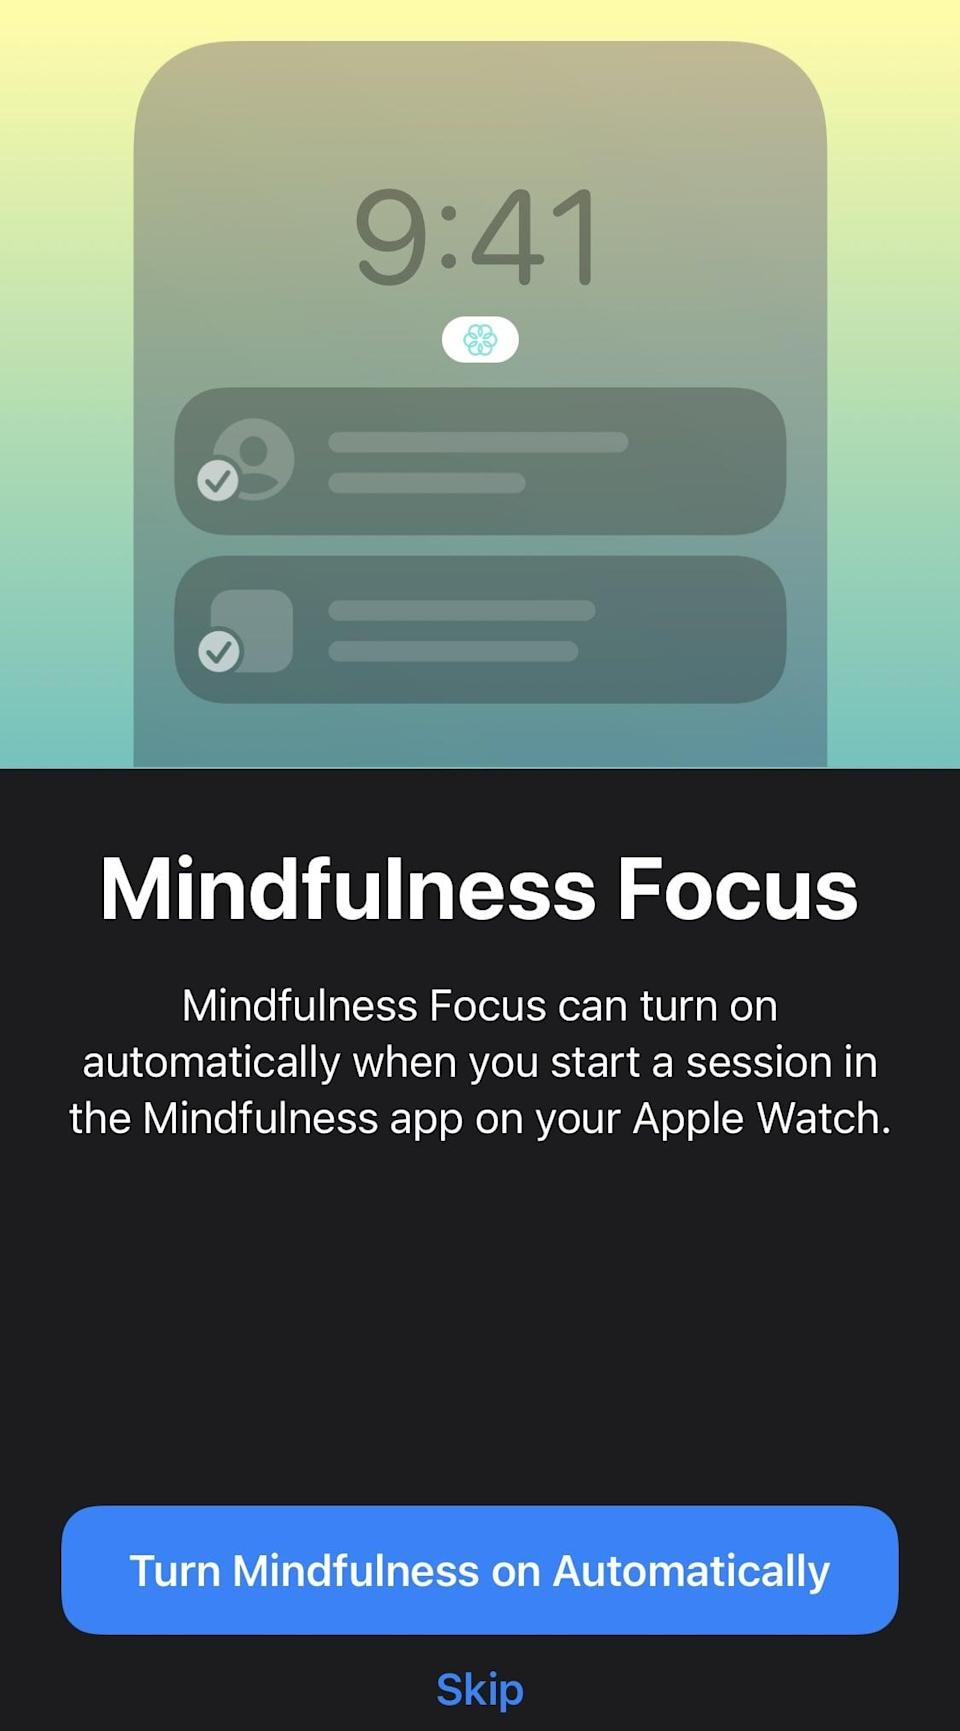 <p>One of the best features of the new focus software is how easy it is to activate and share your focus settings across various Apple devices. For example, you can program the Mindfulness focus setting to turn on automatically whenever you begin a session in the Mindfulness app on your Apple Watch. Additionally, when a focus setting is activated on one device such as your phone, you can program it to activate the same restrictions or allowances across any other device connected to your iCloud account.</p>